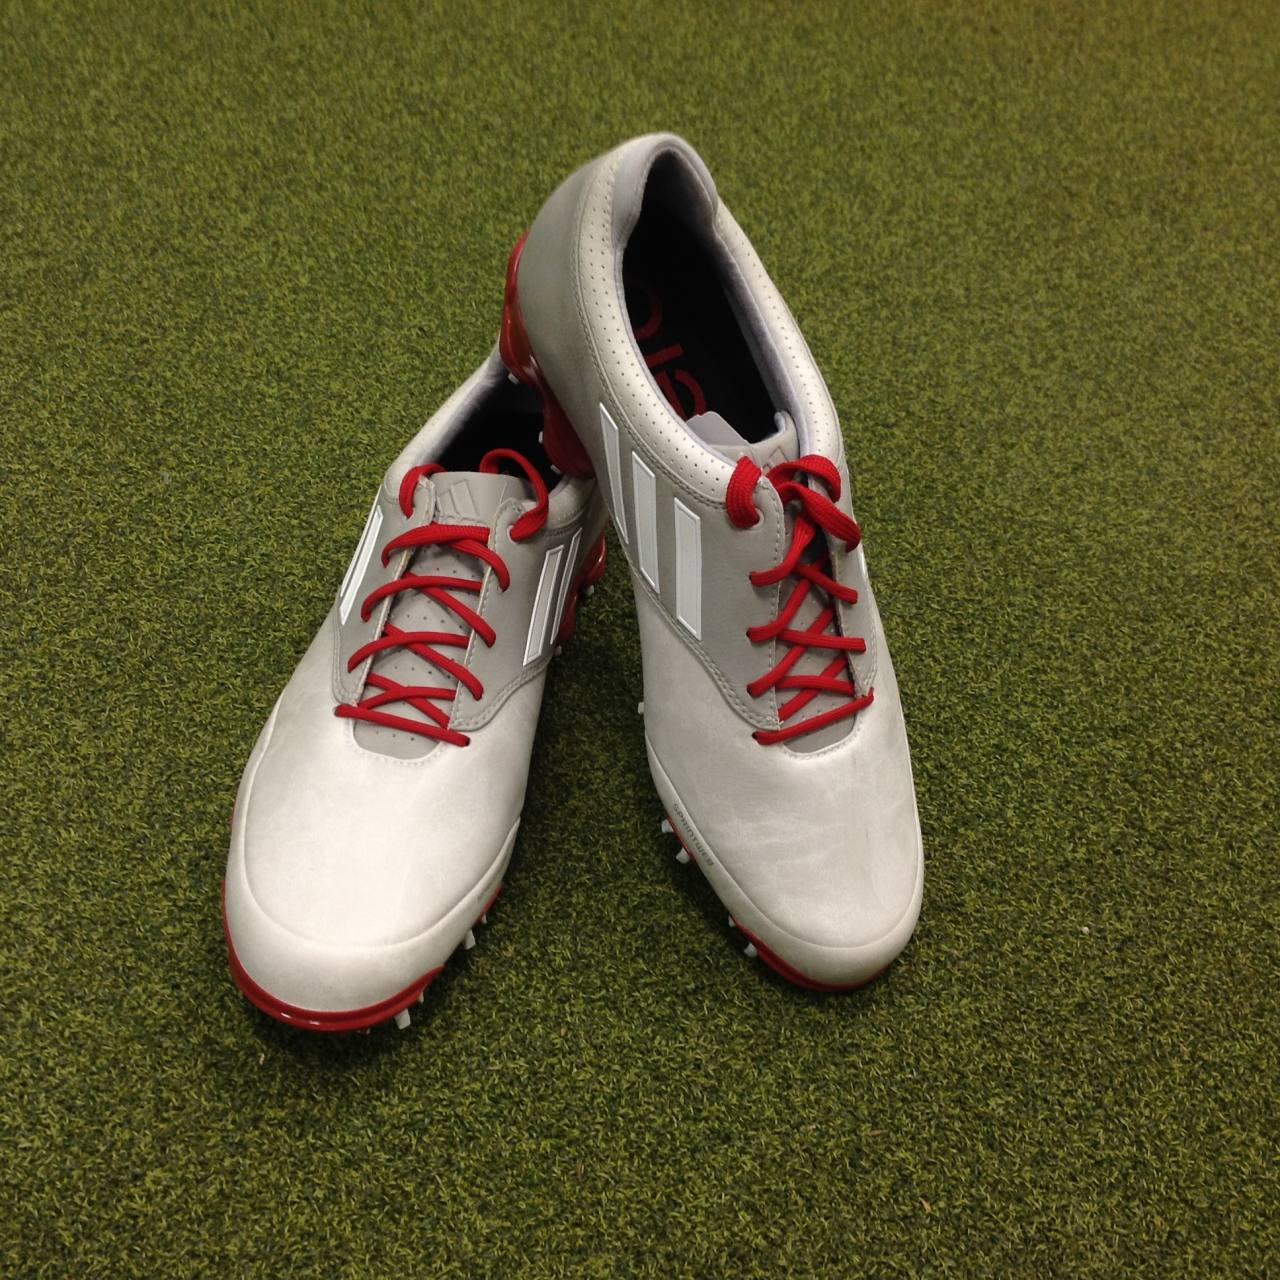 cc9c6f7199f4 Details about NEW Adidas Adizero Tour Golf Shoes - UK Size 8.5 - US 9 - EU  42 2 3